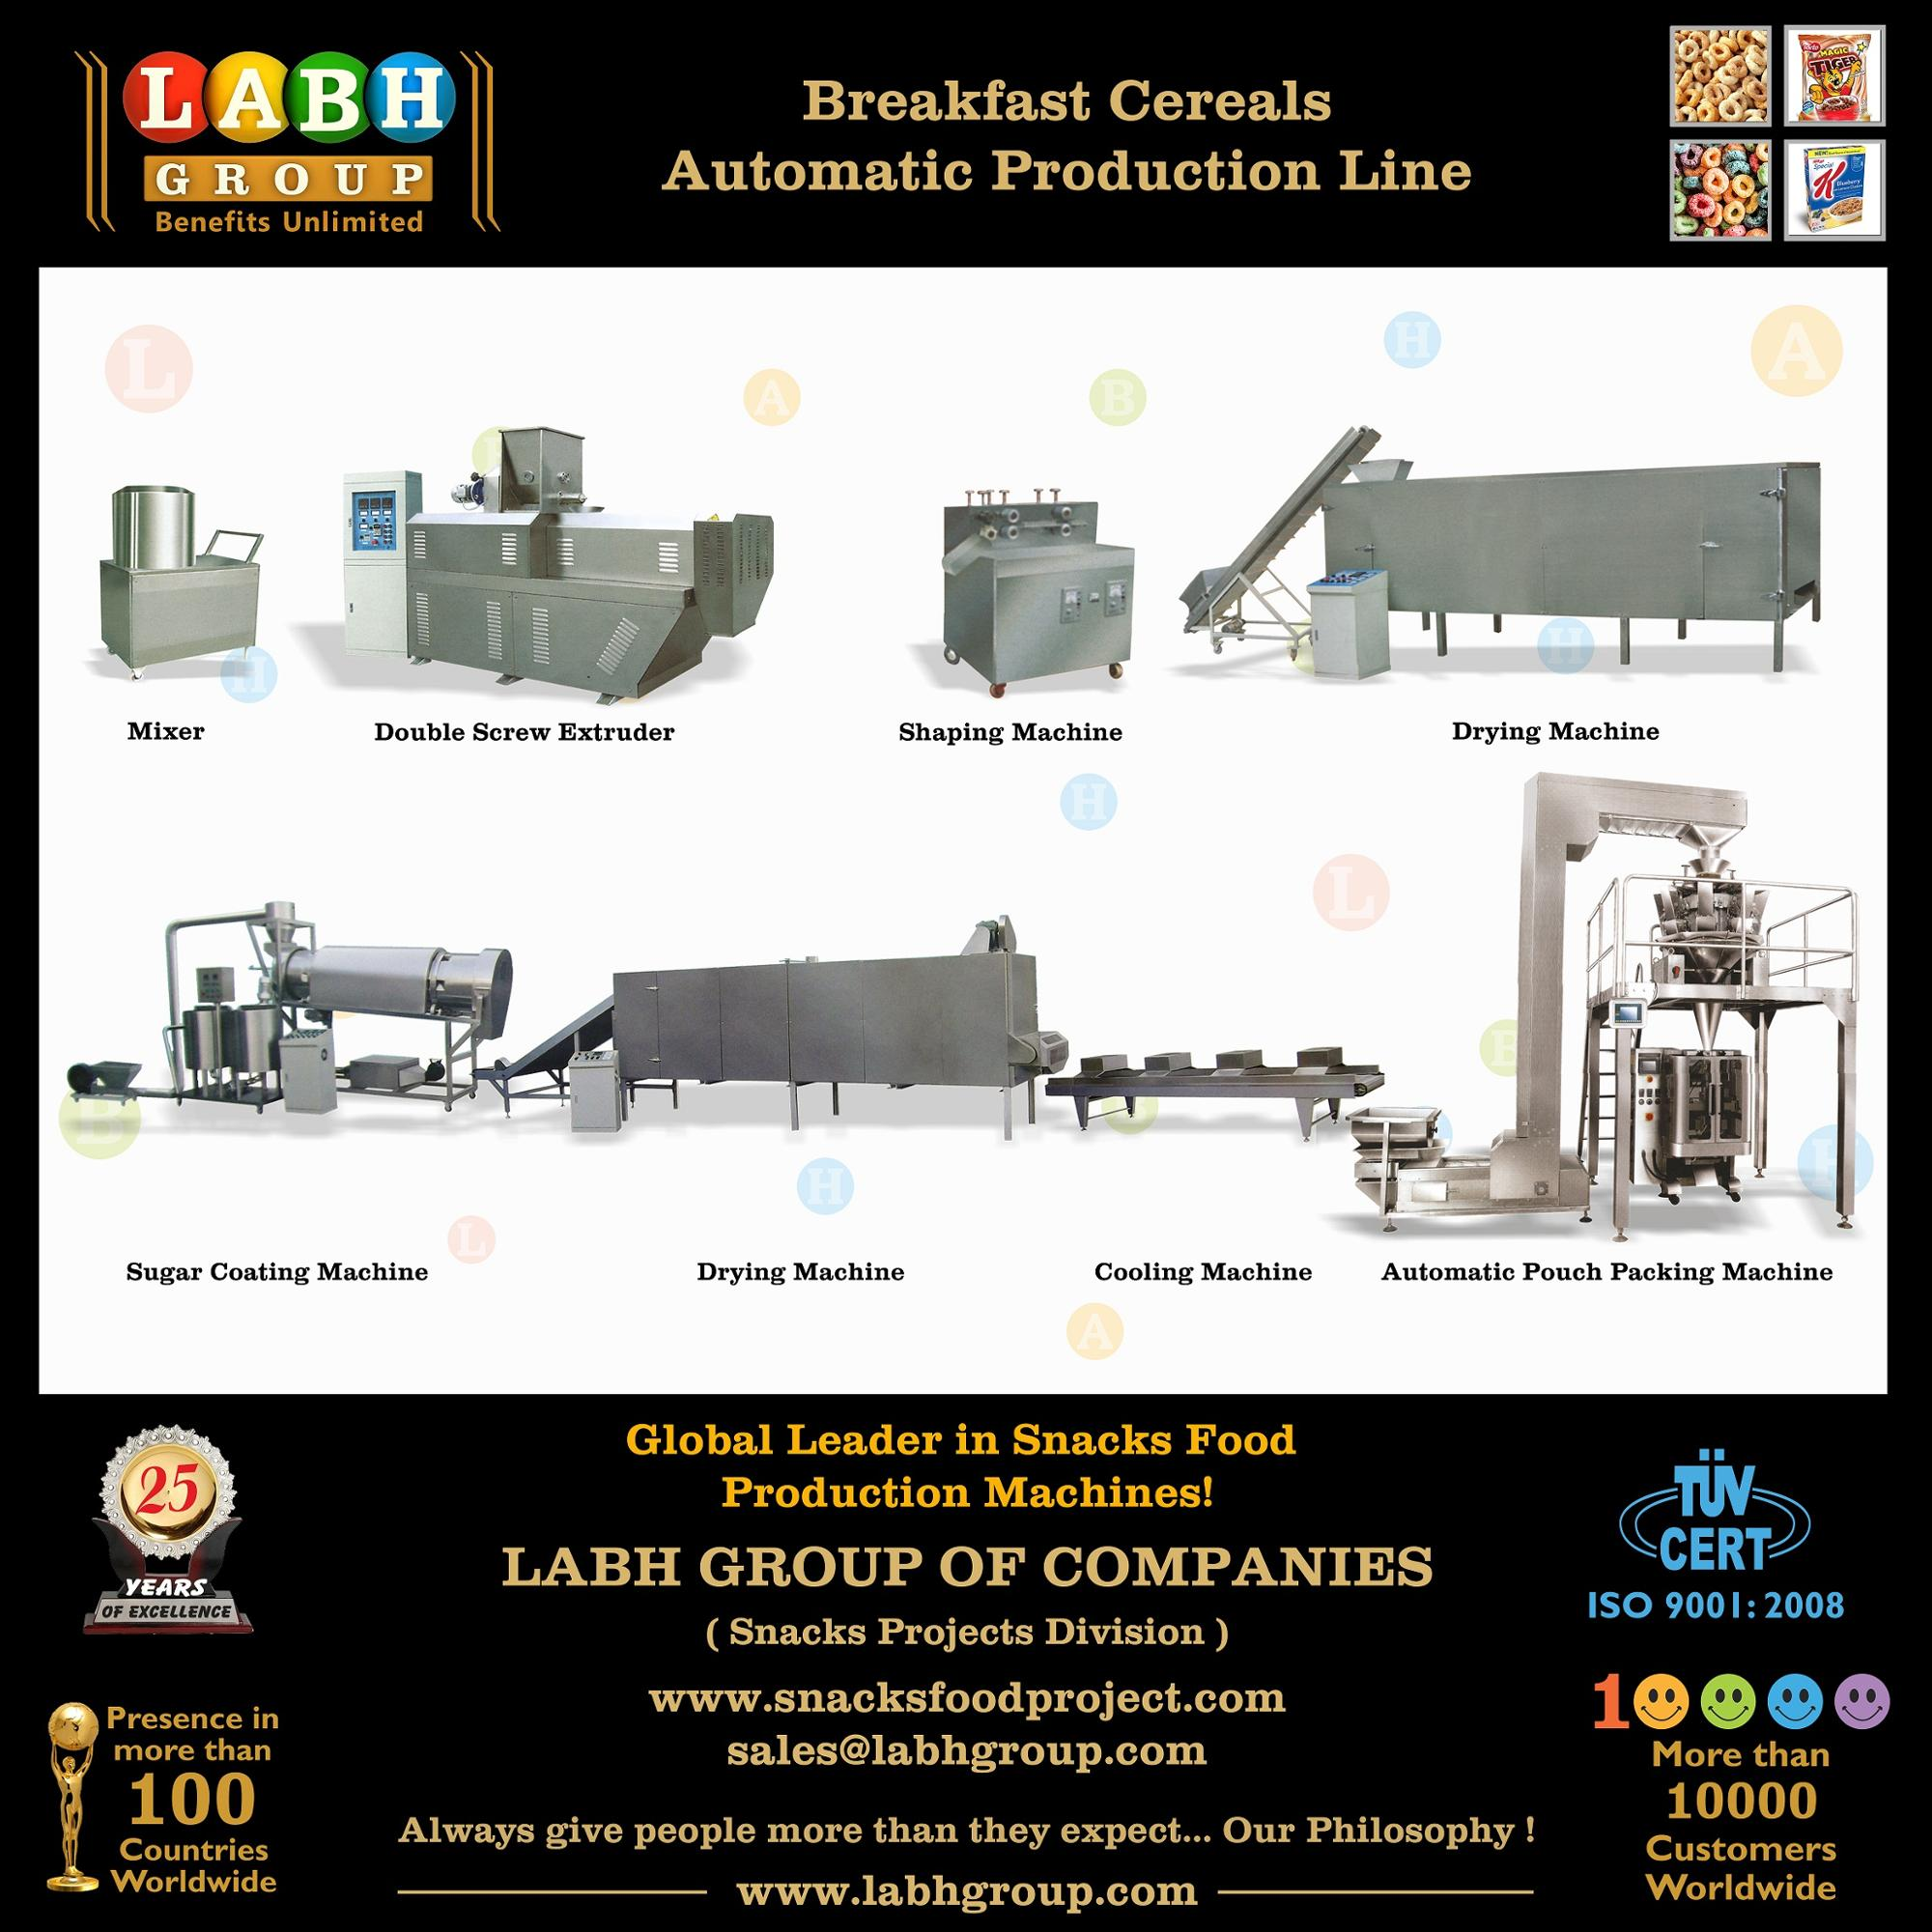 Low Price Breakfast Cereals Producing Equipment